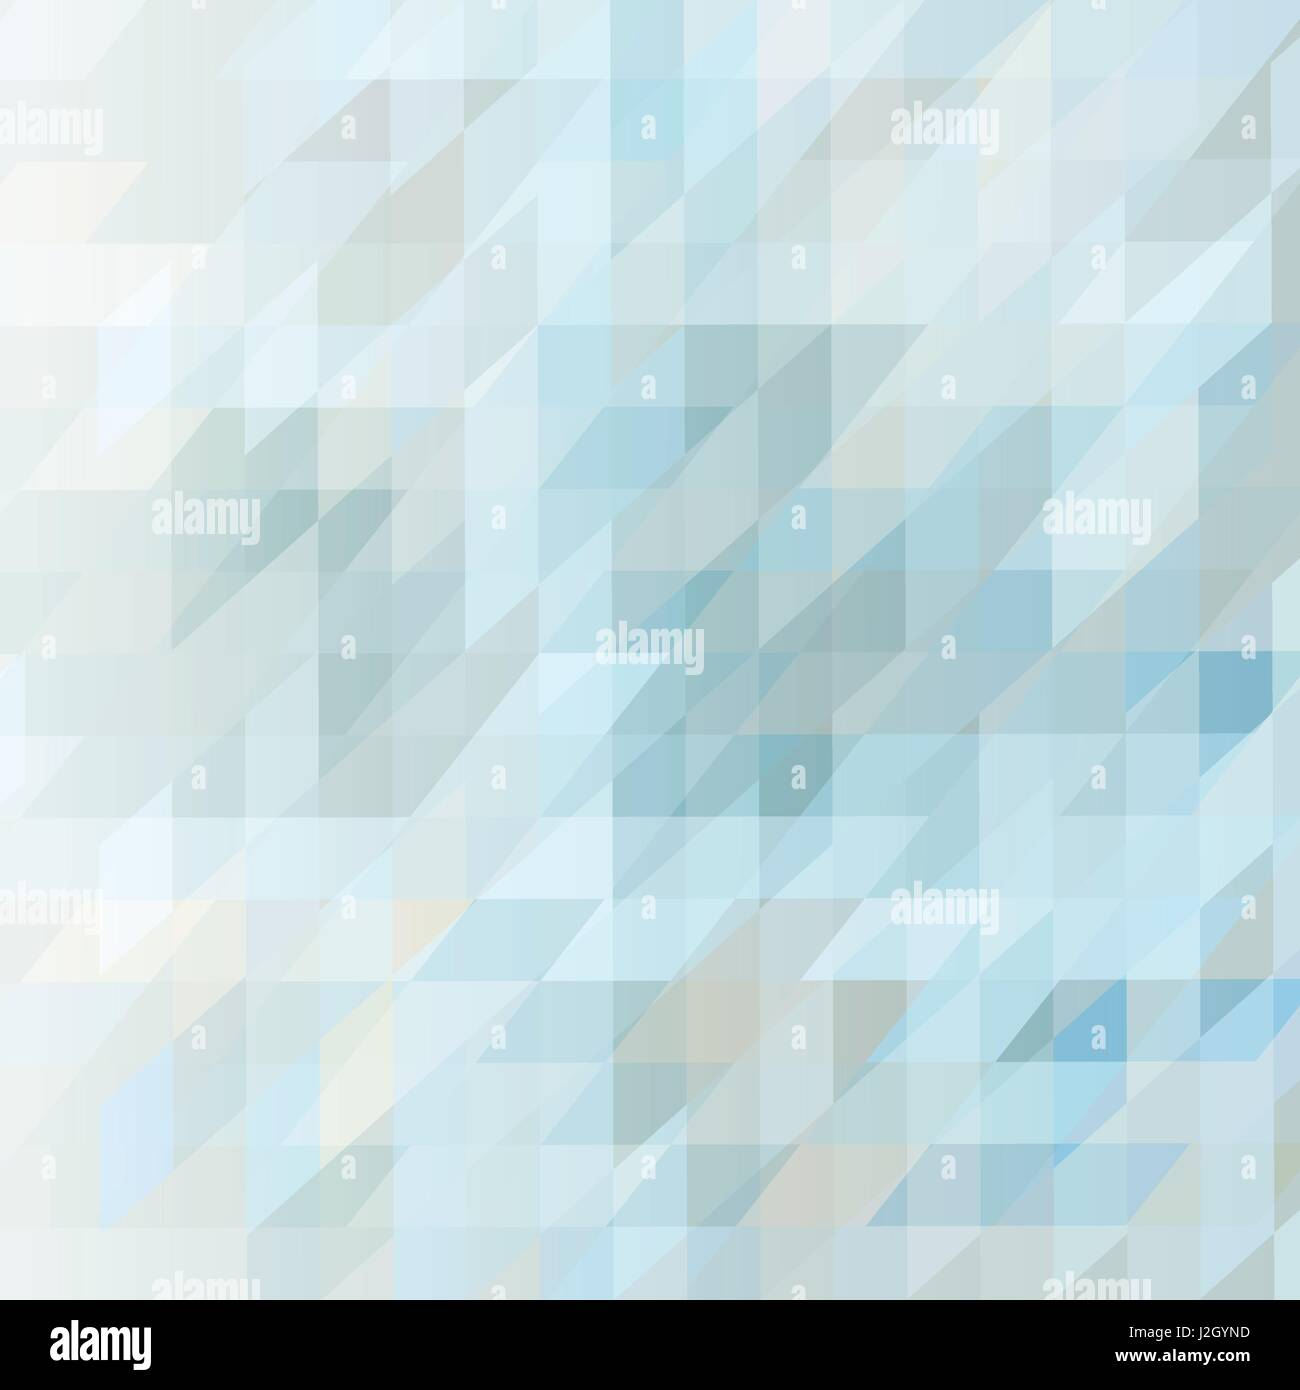 Abstract background in light blue tones. - Stock Image